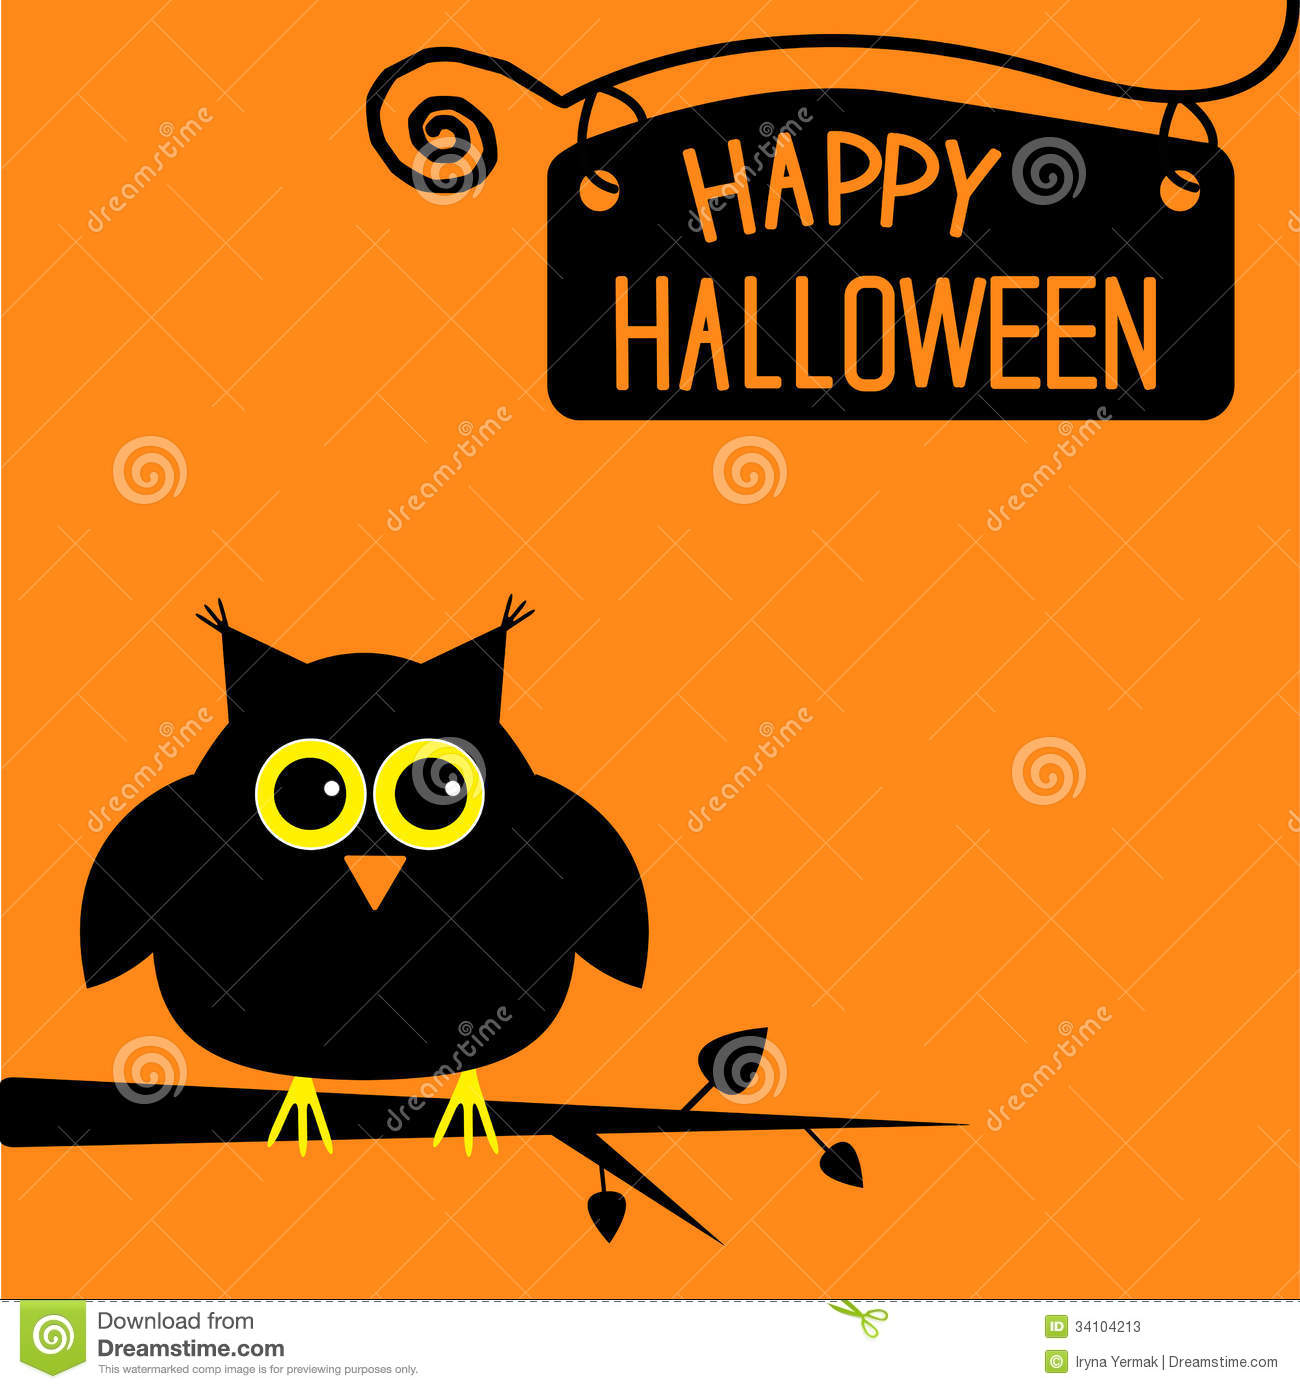 Nice Happy Halloween Cute Owl Card.